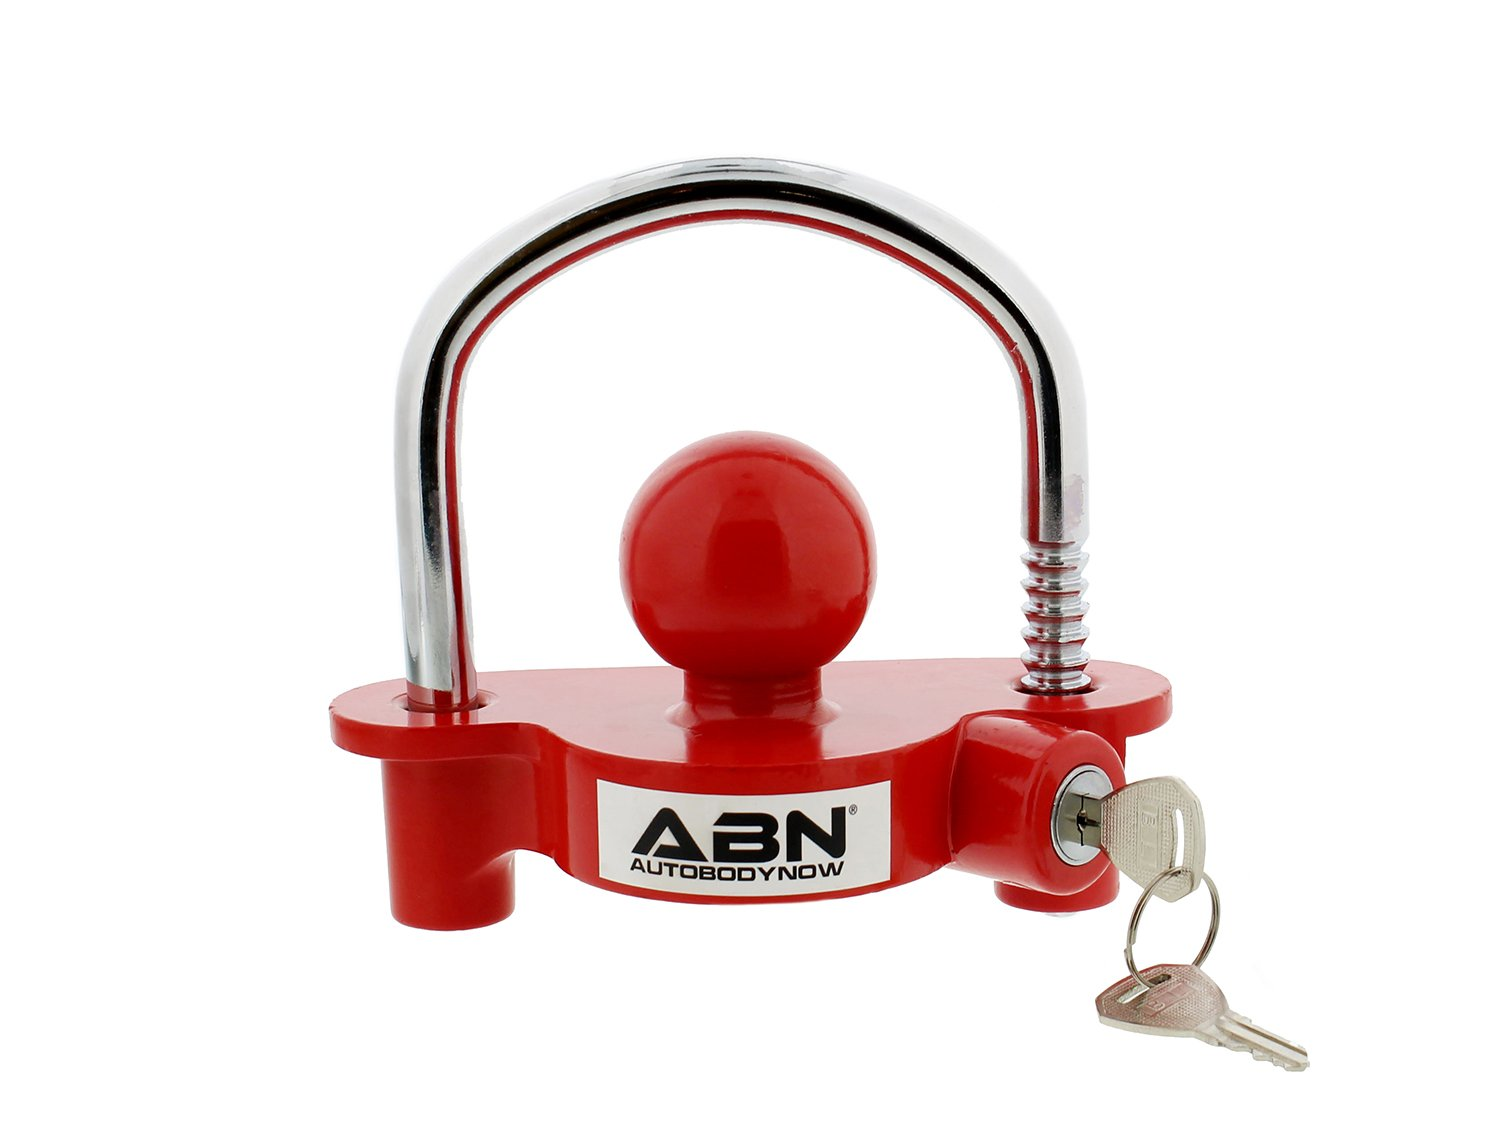 ABN Trailer Hitch Lock - Universal Trailer Coupler Lock and Key, 2in in Trailer Ball Locks with 4in in Locking Hitch Pin by ABN